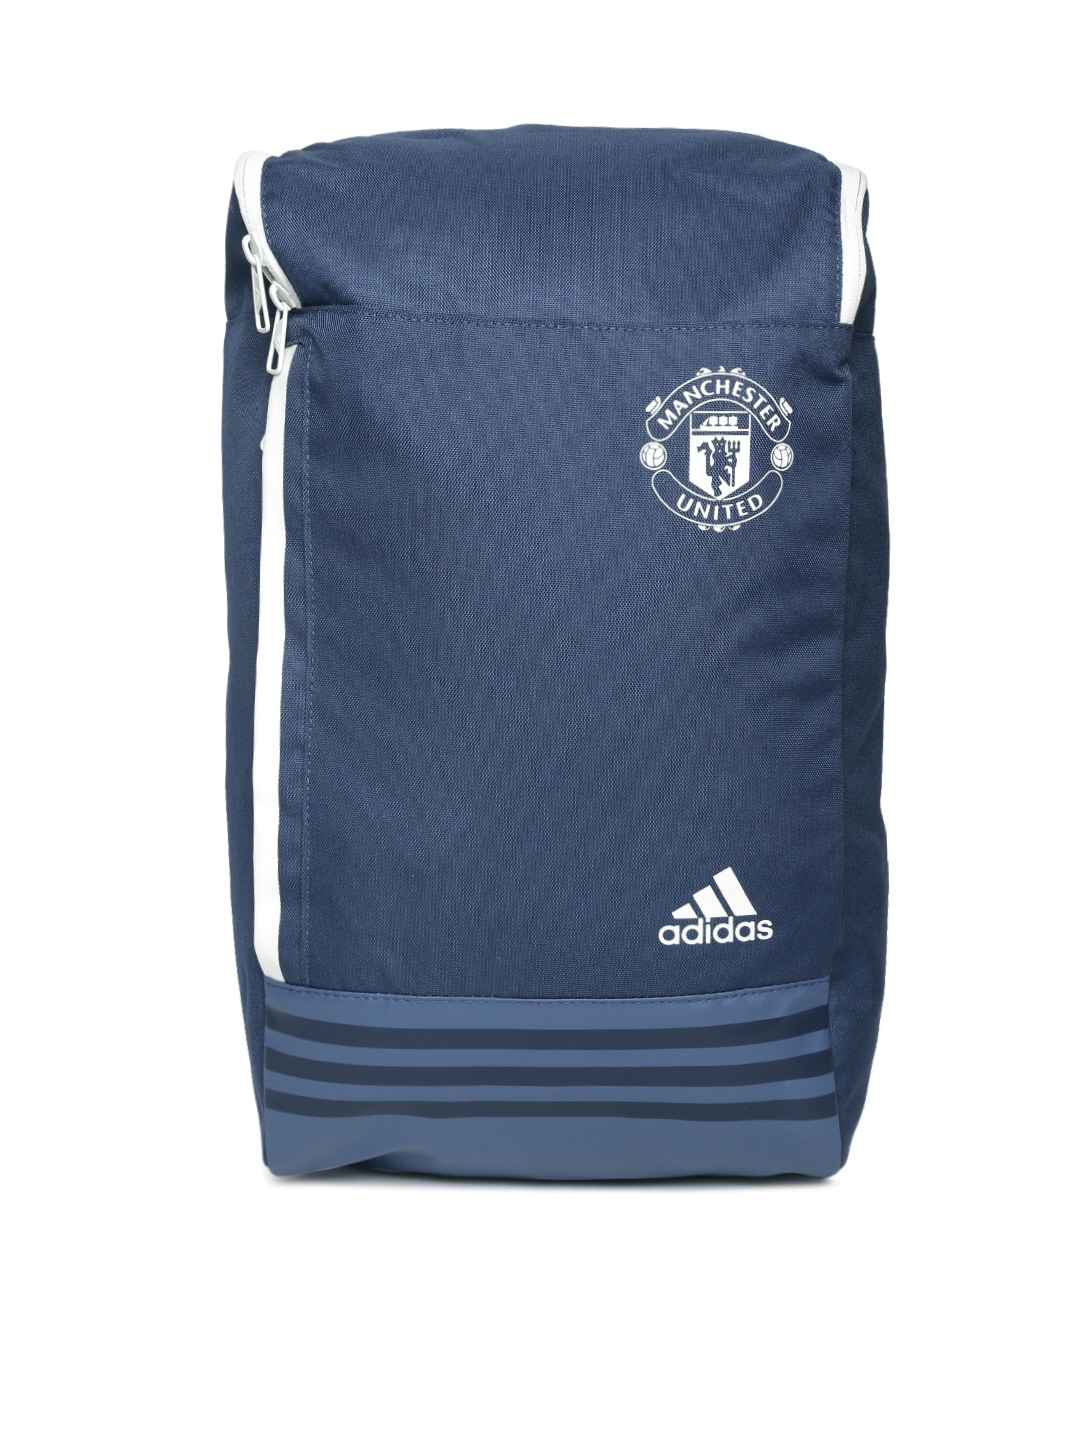 f2571ca85ff00 Adidas s95100 Backpacks - Best Price in India | priceiq.in